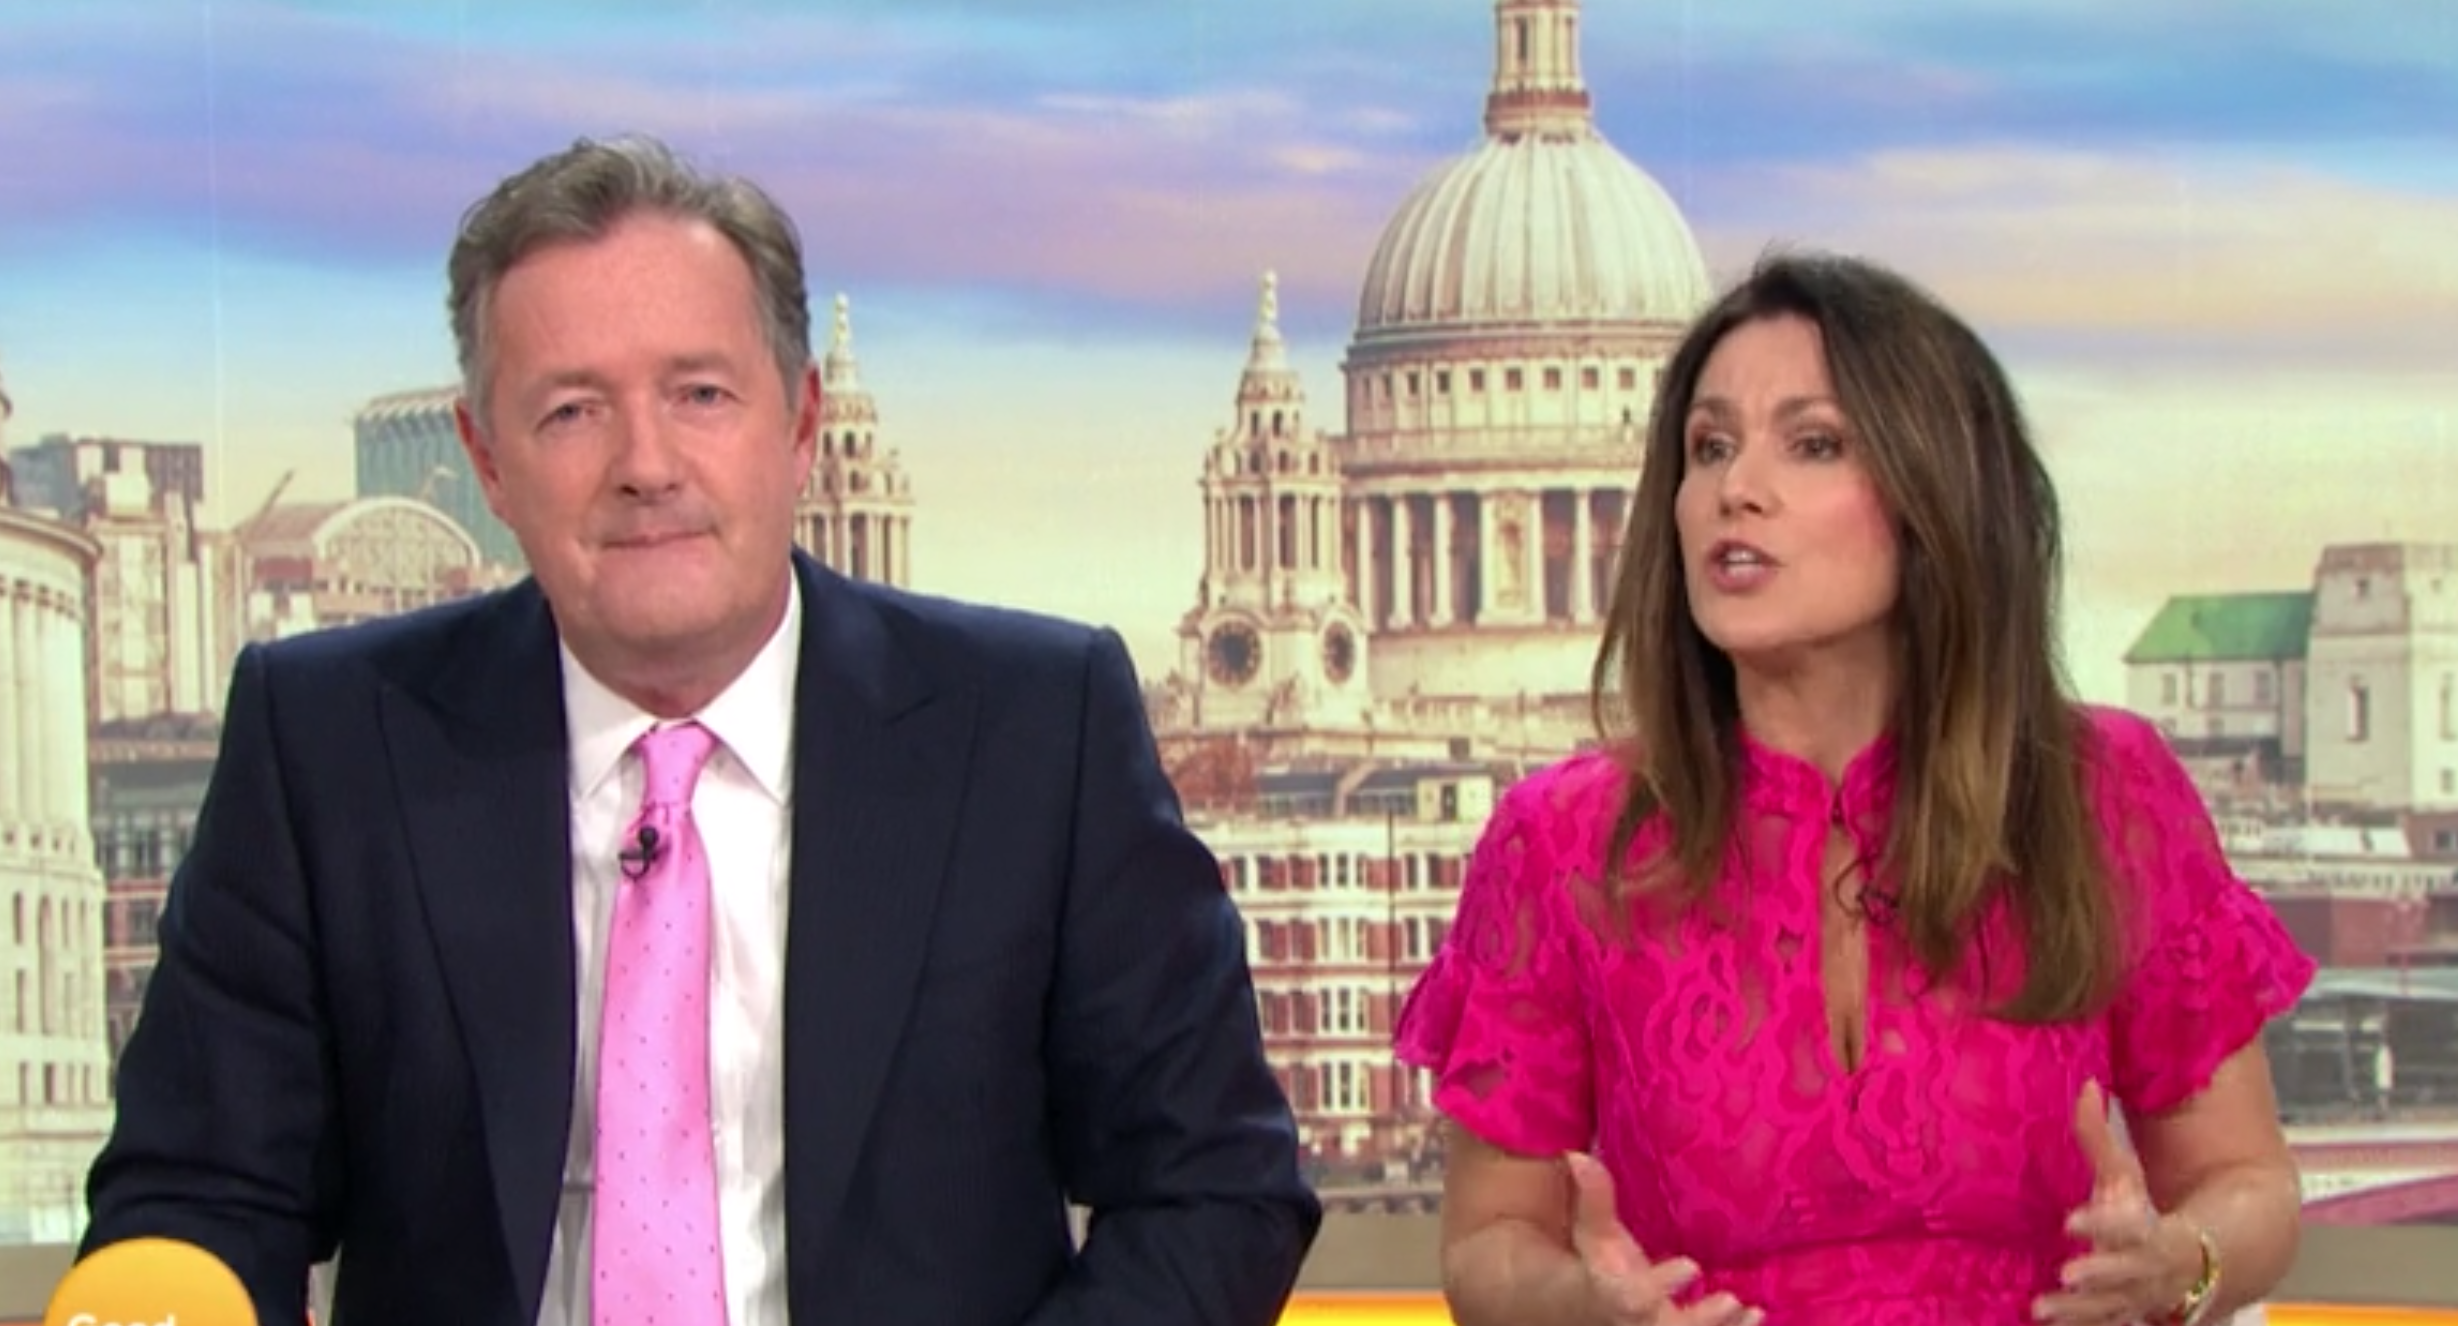 Piers Morgan slams Susanna Reid for not standing up for him in 'row' with GMB co-star